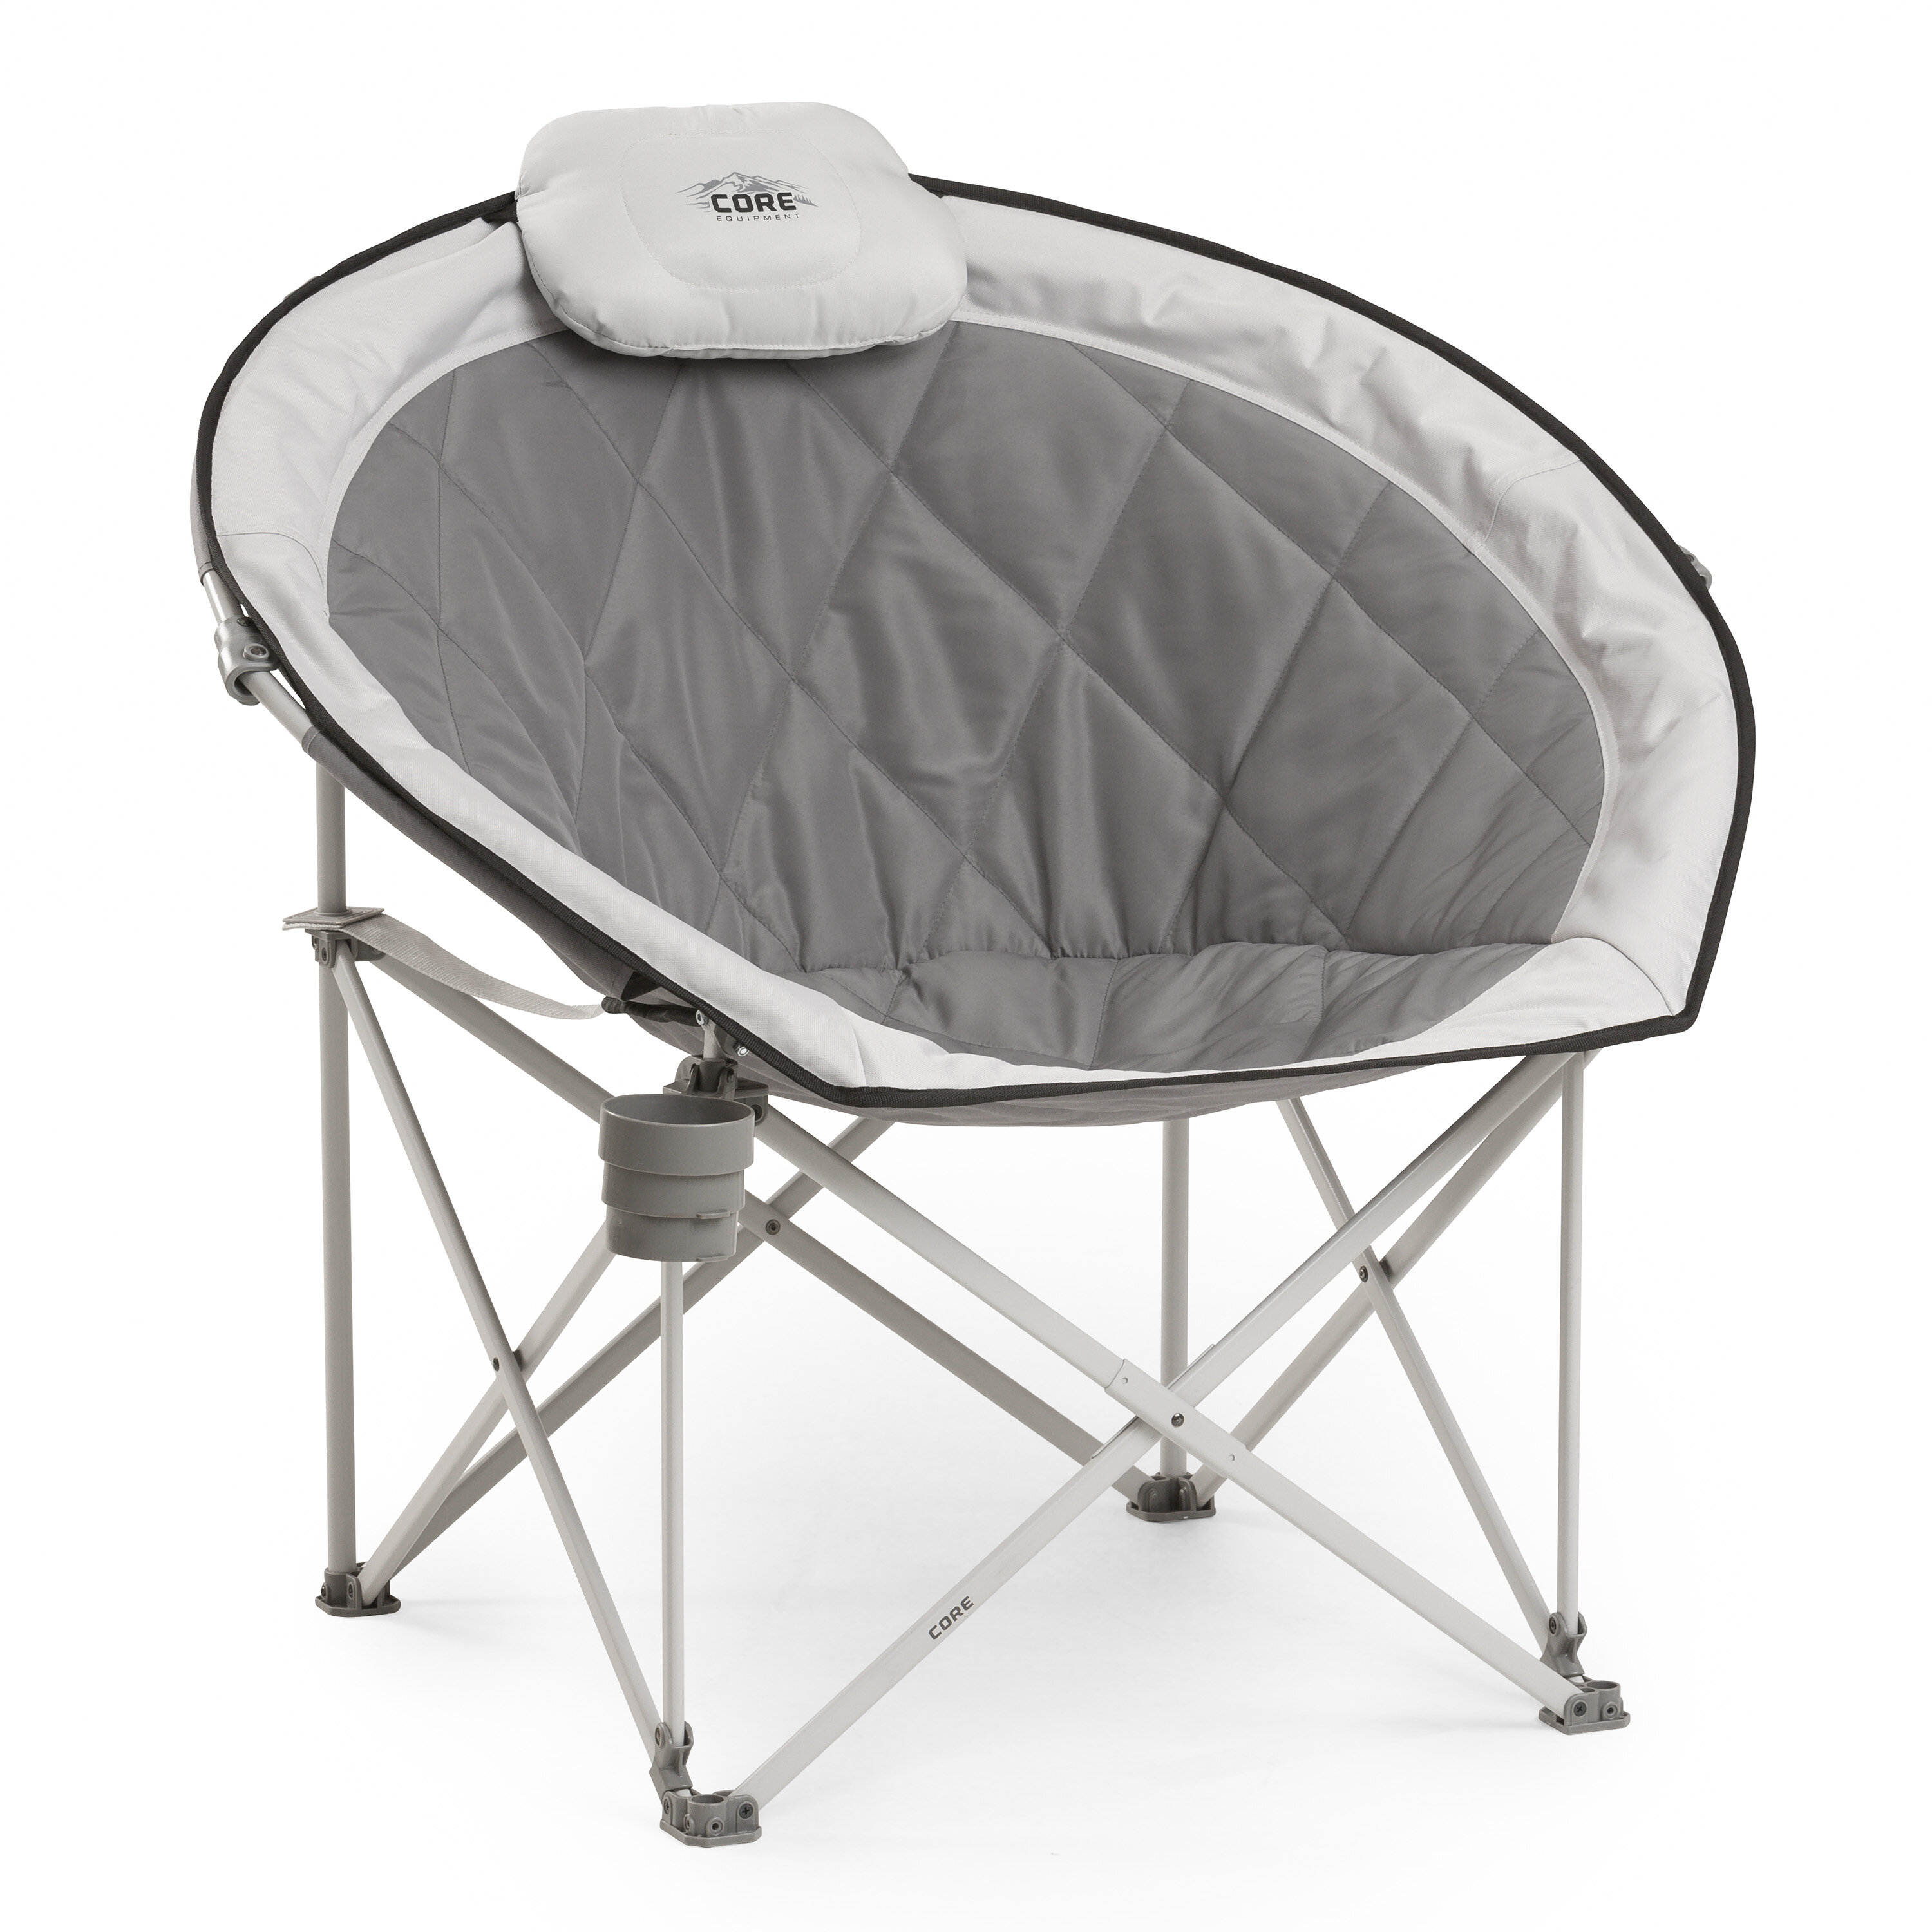 CoreEquipment Folding Camping Chair & Reviews